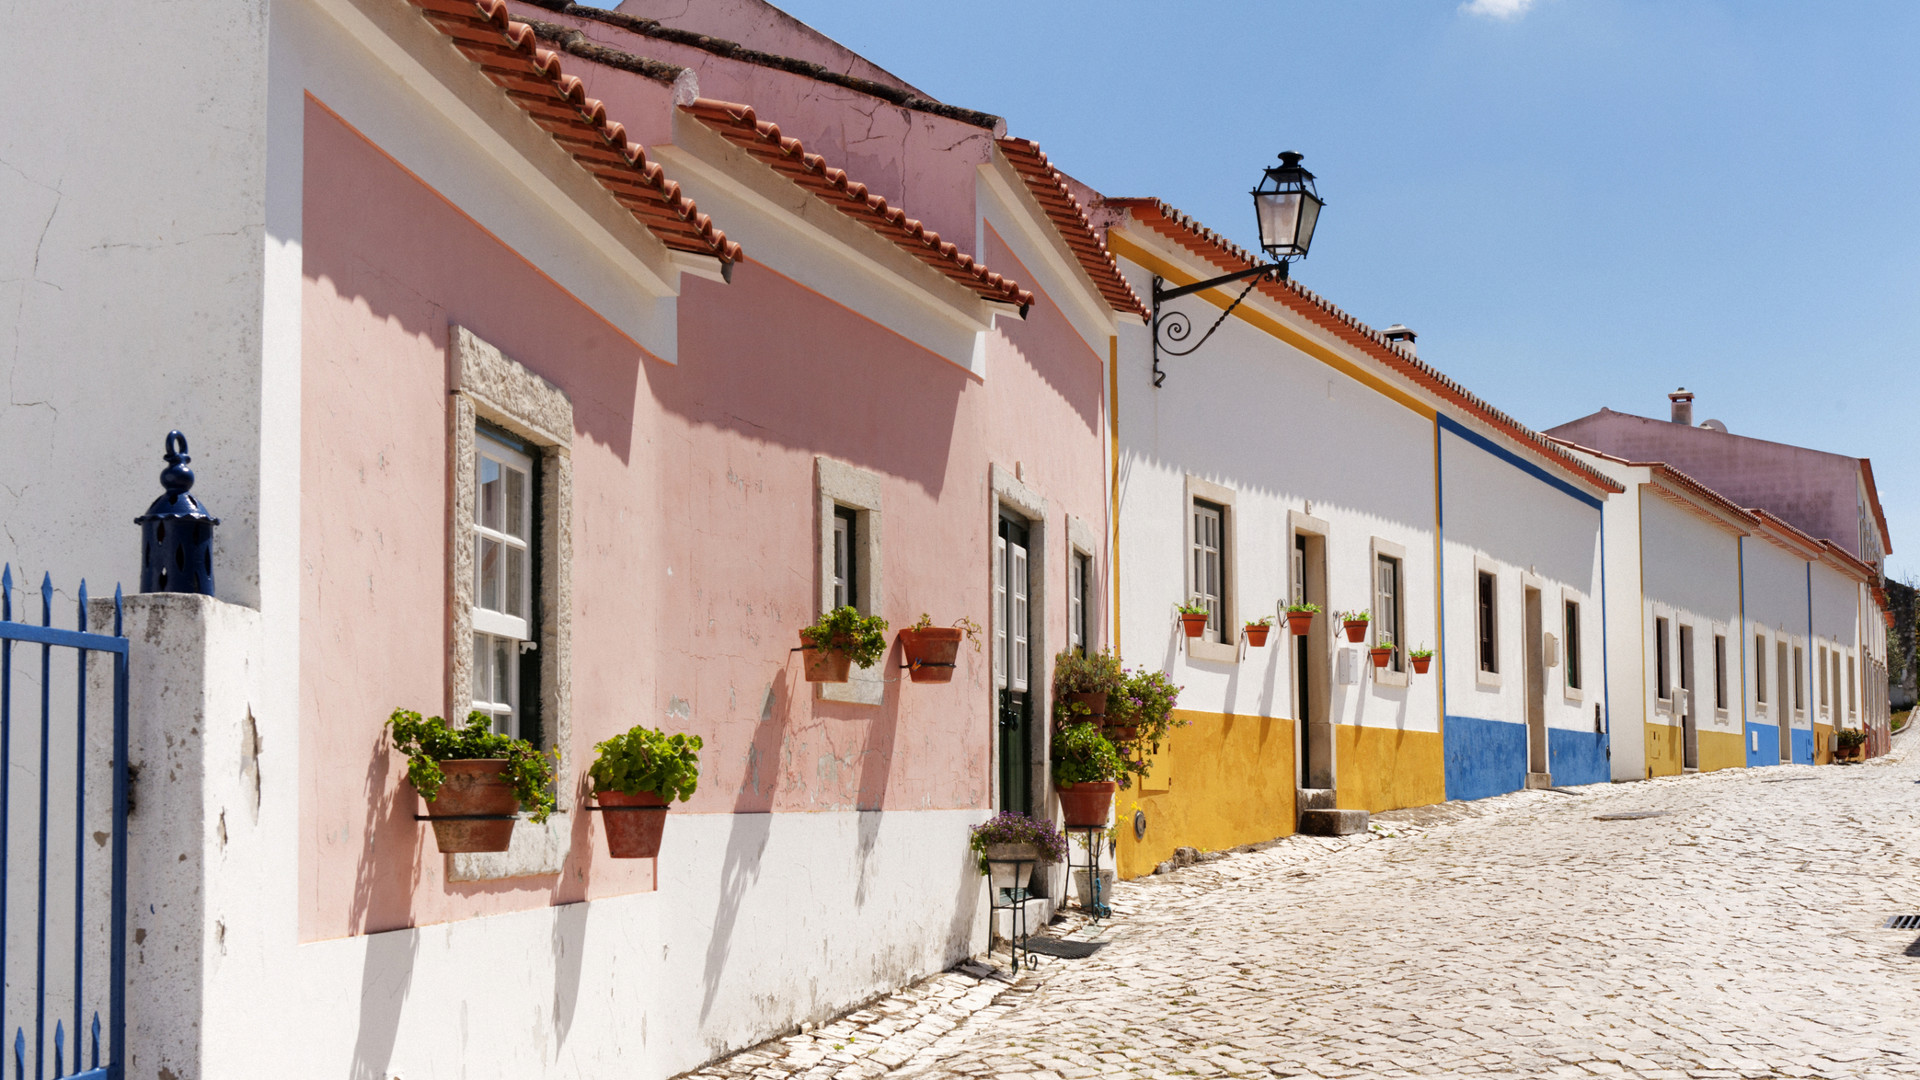 Custom Travel Planner Network-Portugal-Obidos